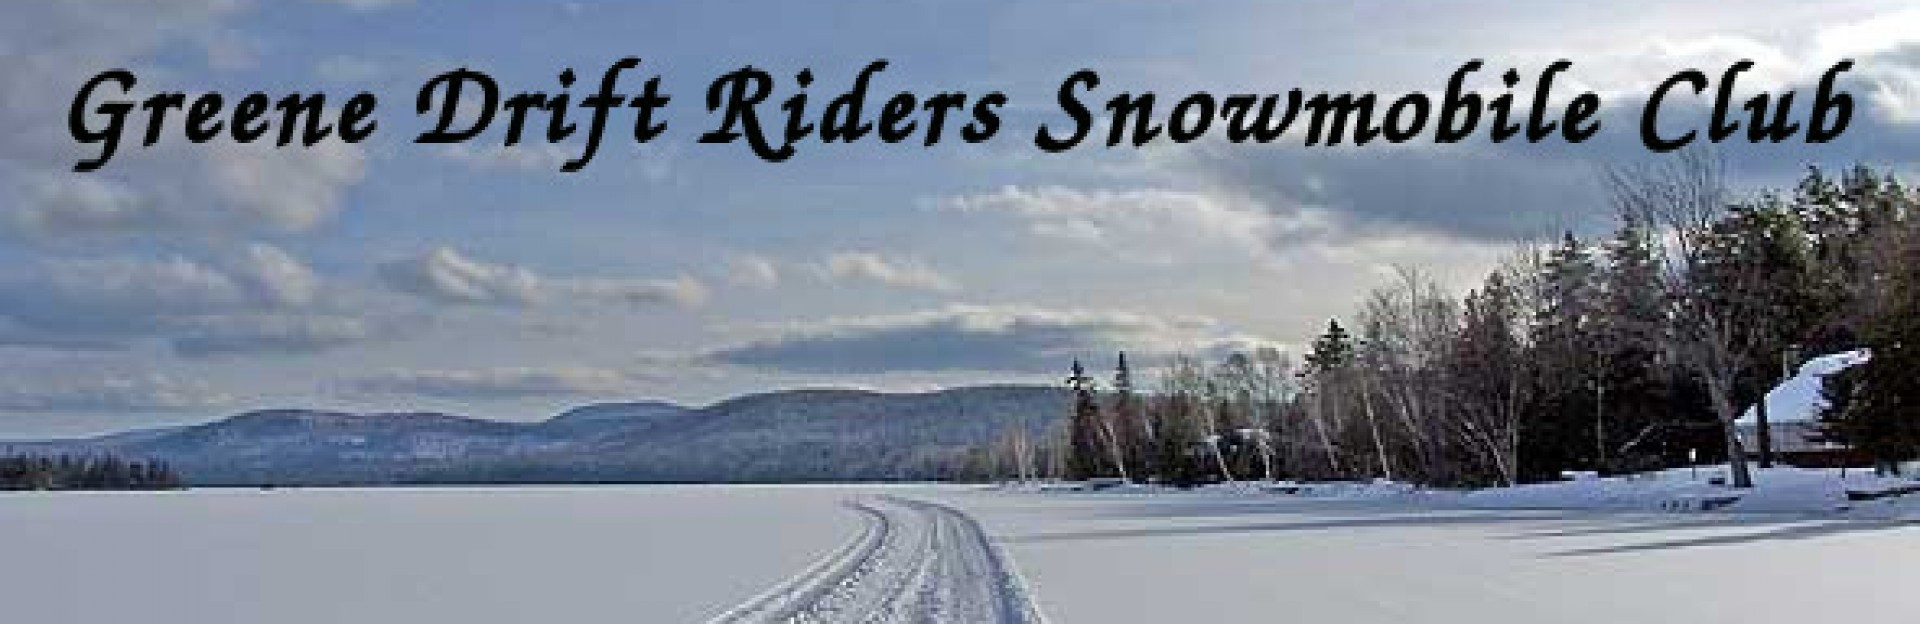 Greene Drift Riders Snowmobile Club